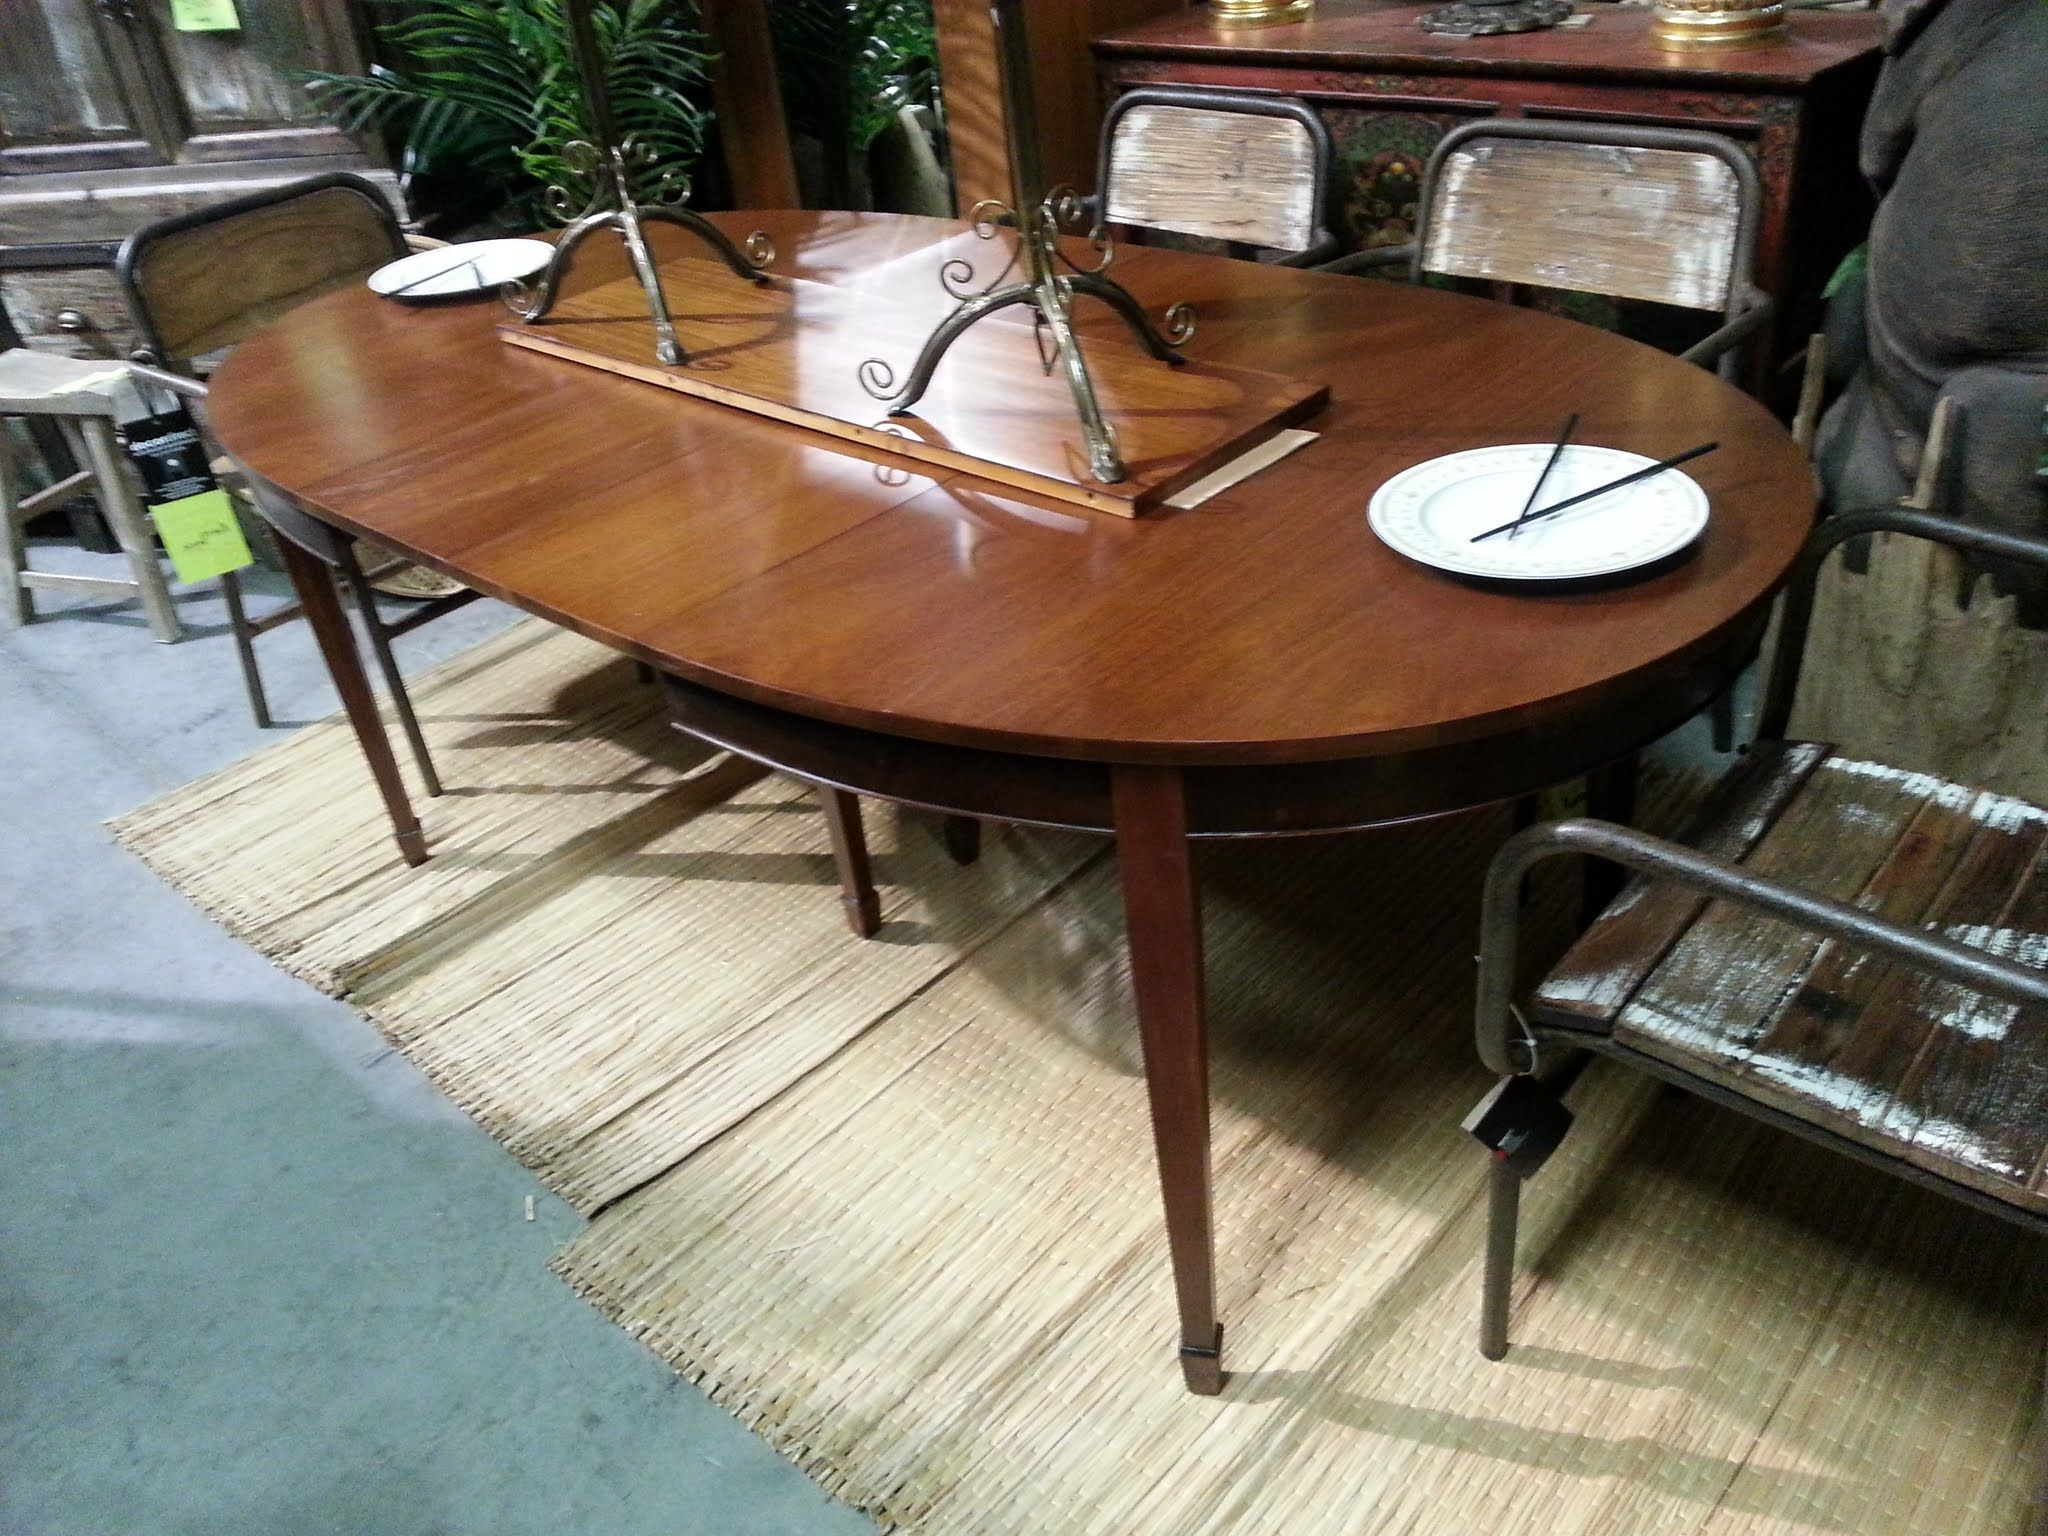 Drexel Mahogany Table From The New Travis Court Collection - Drexel dining table